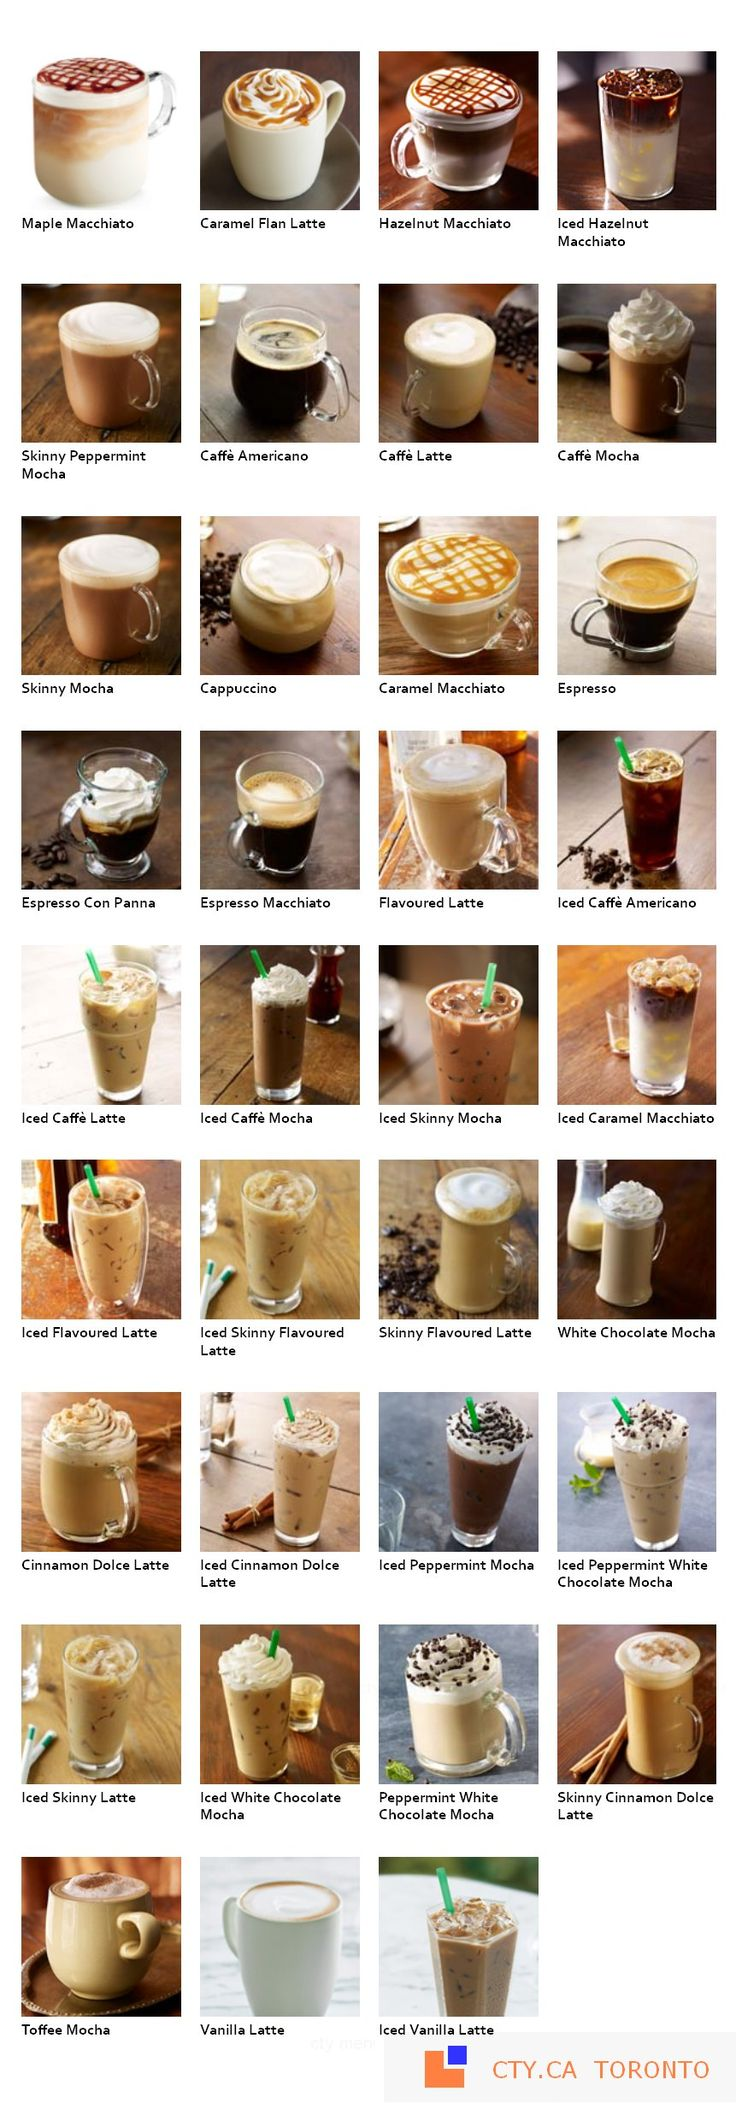 Starbucks Espresso Beverages